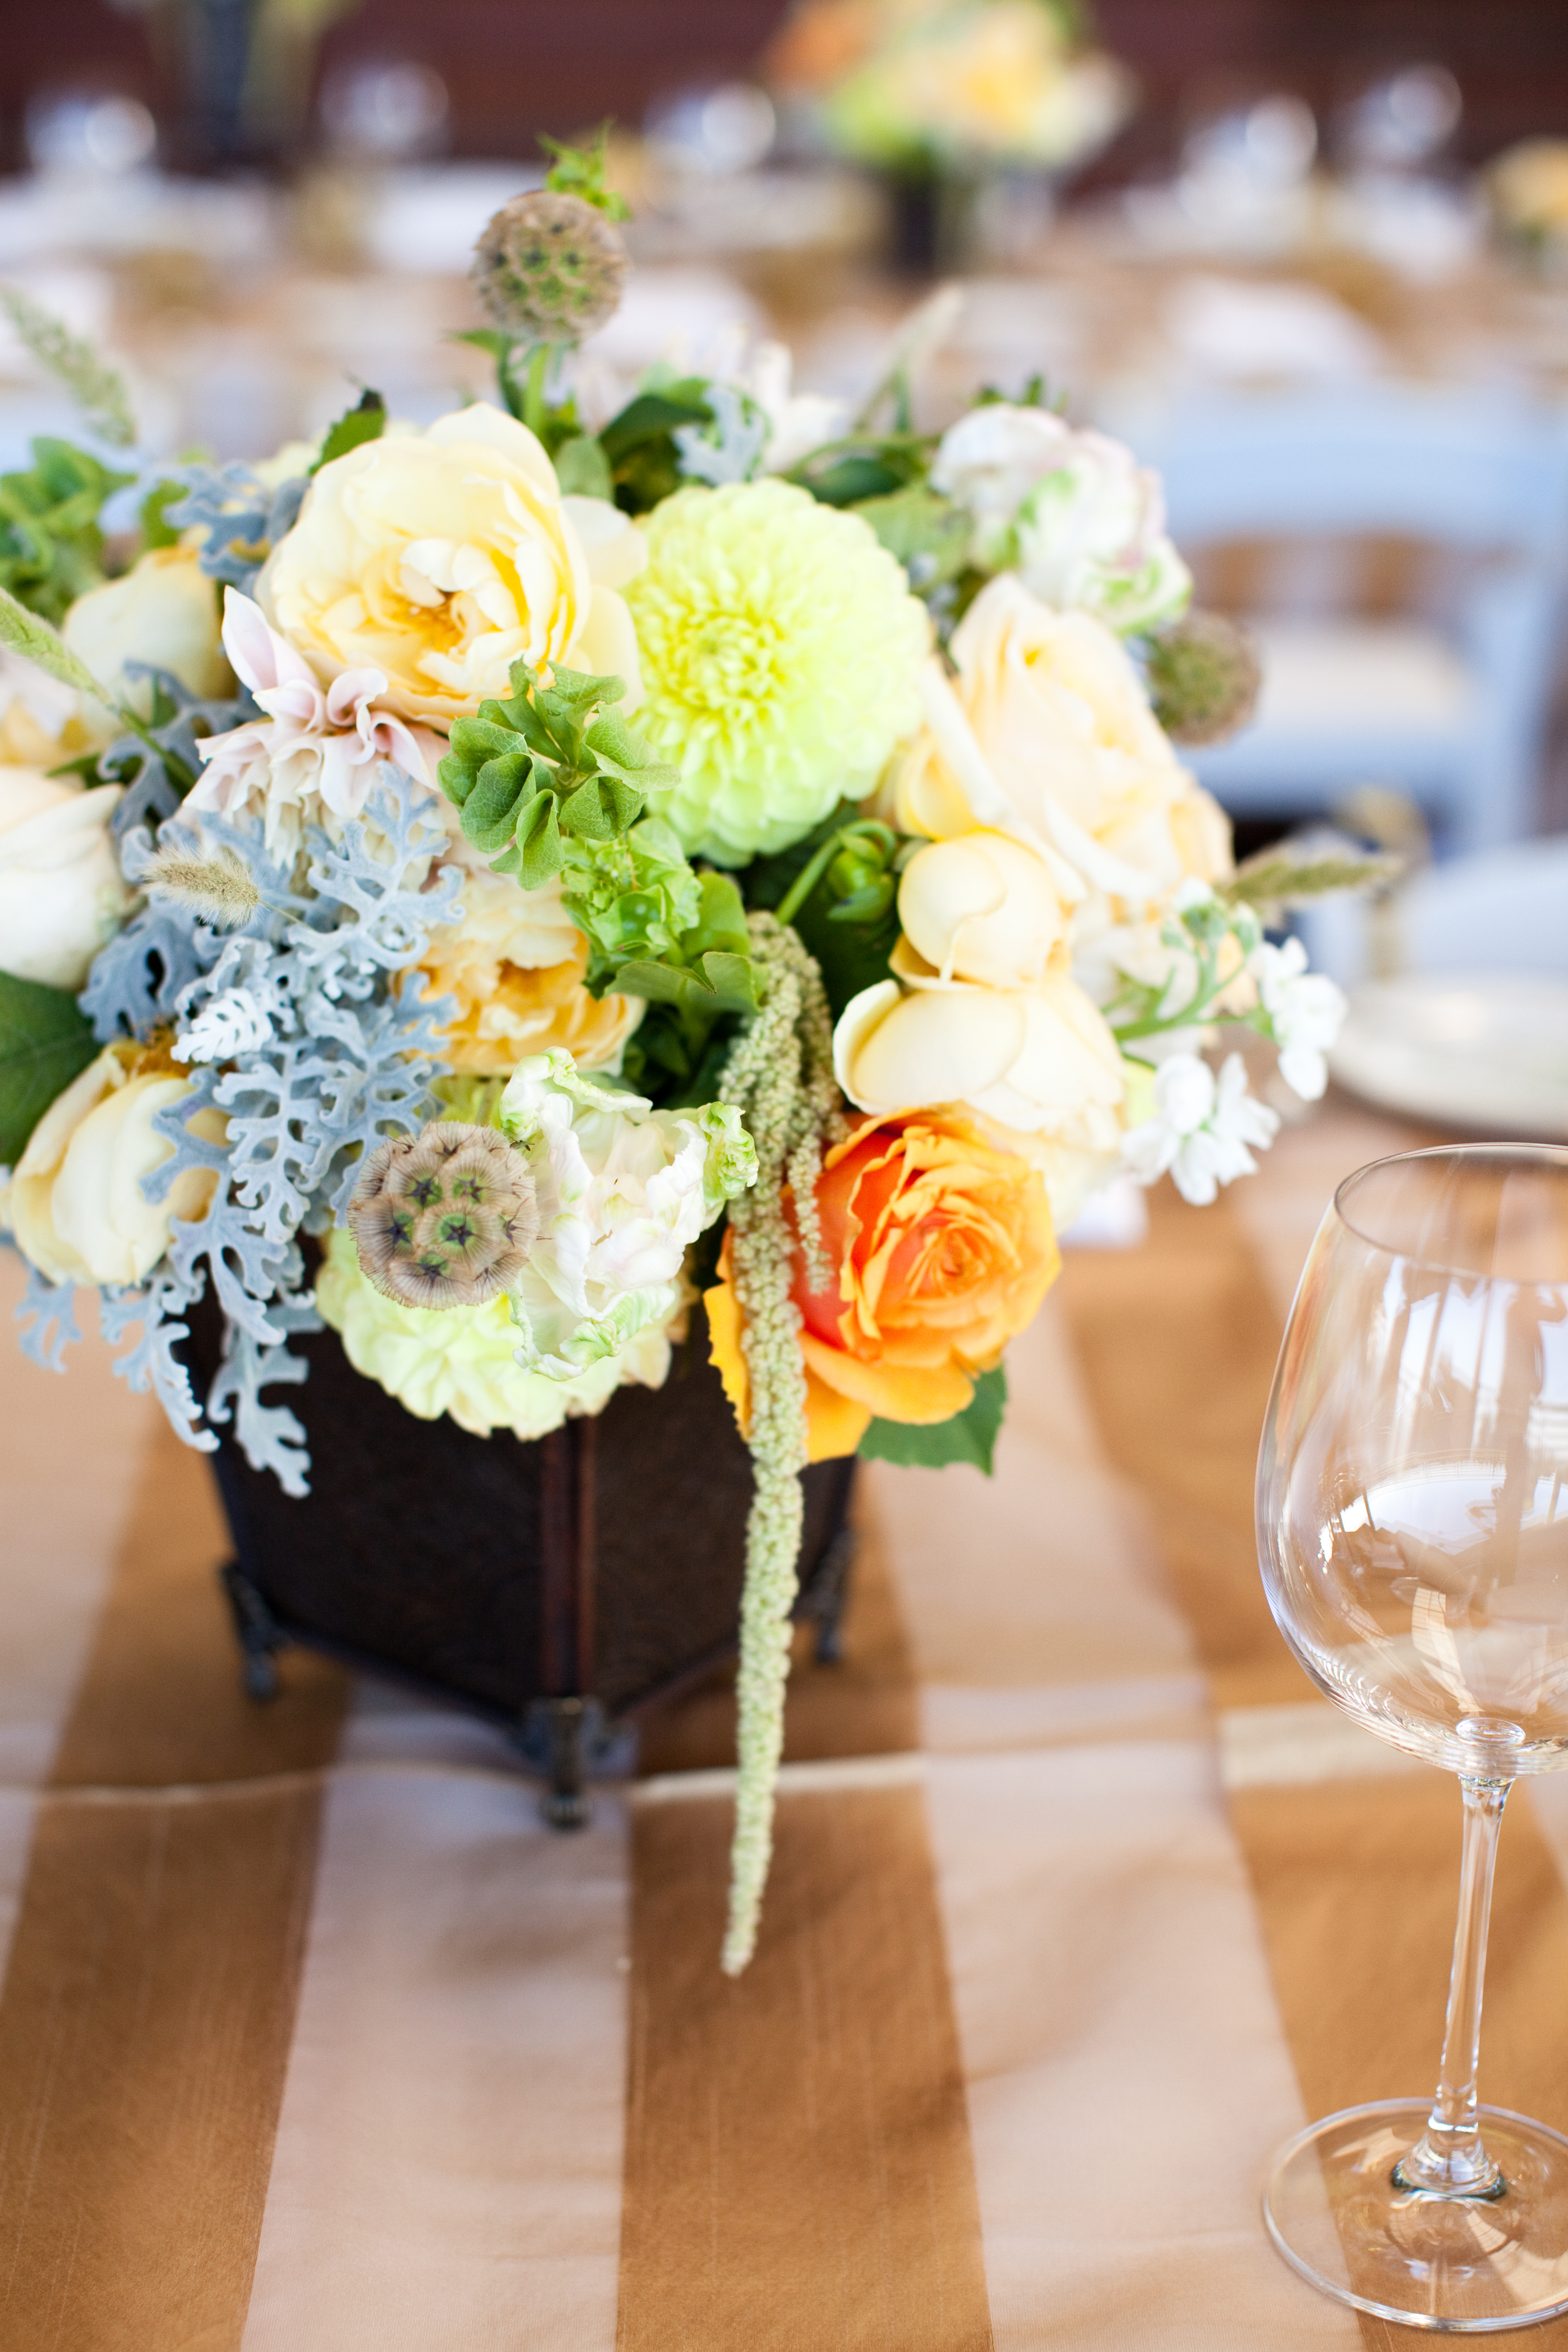 Flowers & Decor, Real Weddings, Wedding Style, yellow, Centerpieces, Summer Weddings, West Coast Real Weddings, Garden Real Weddings, Summer Real Weddings, Garden Weddings, Summer Wedding Flowers & Decor